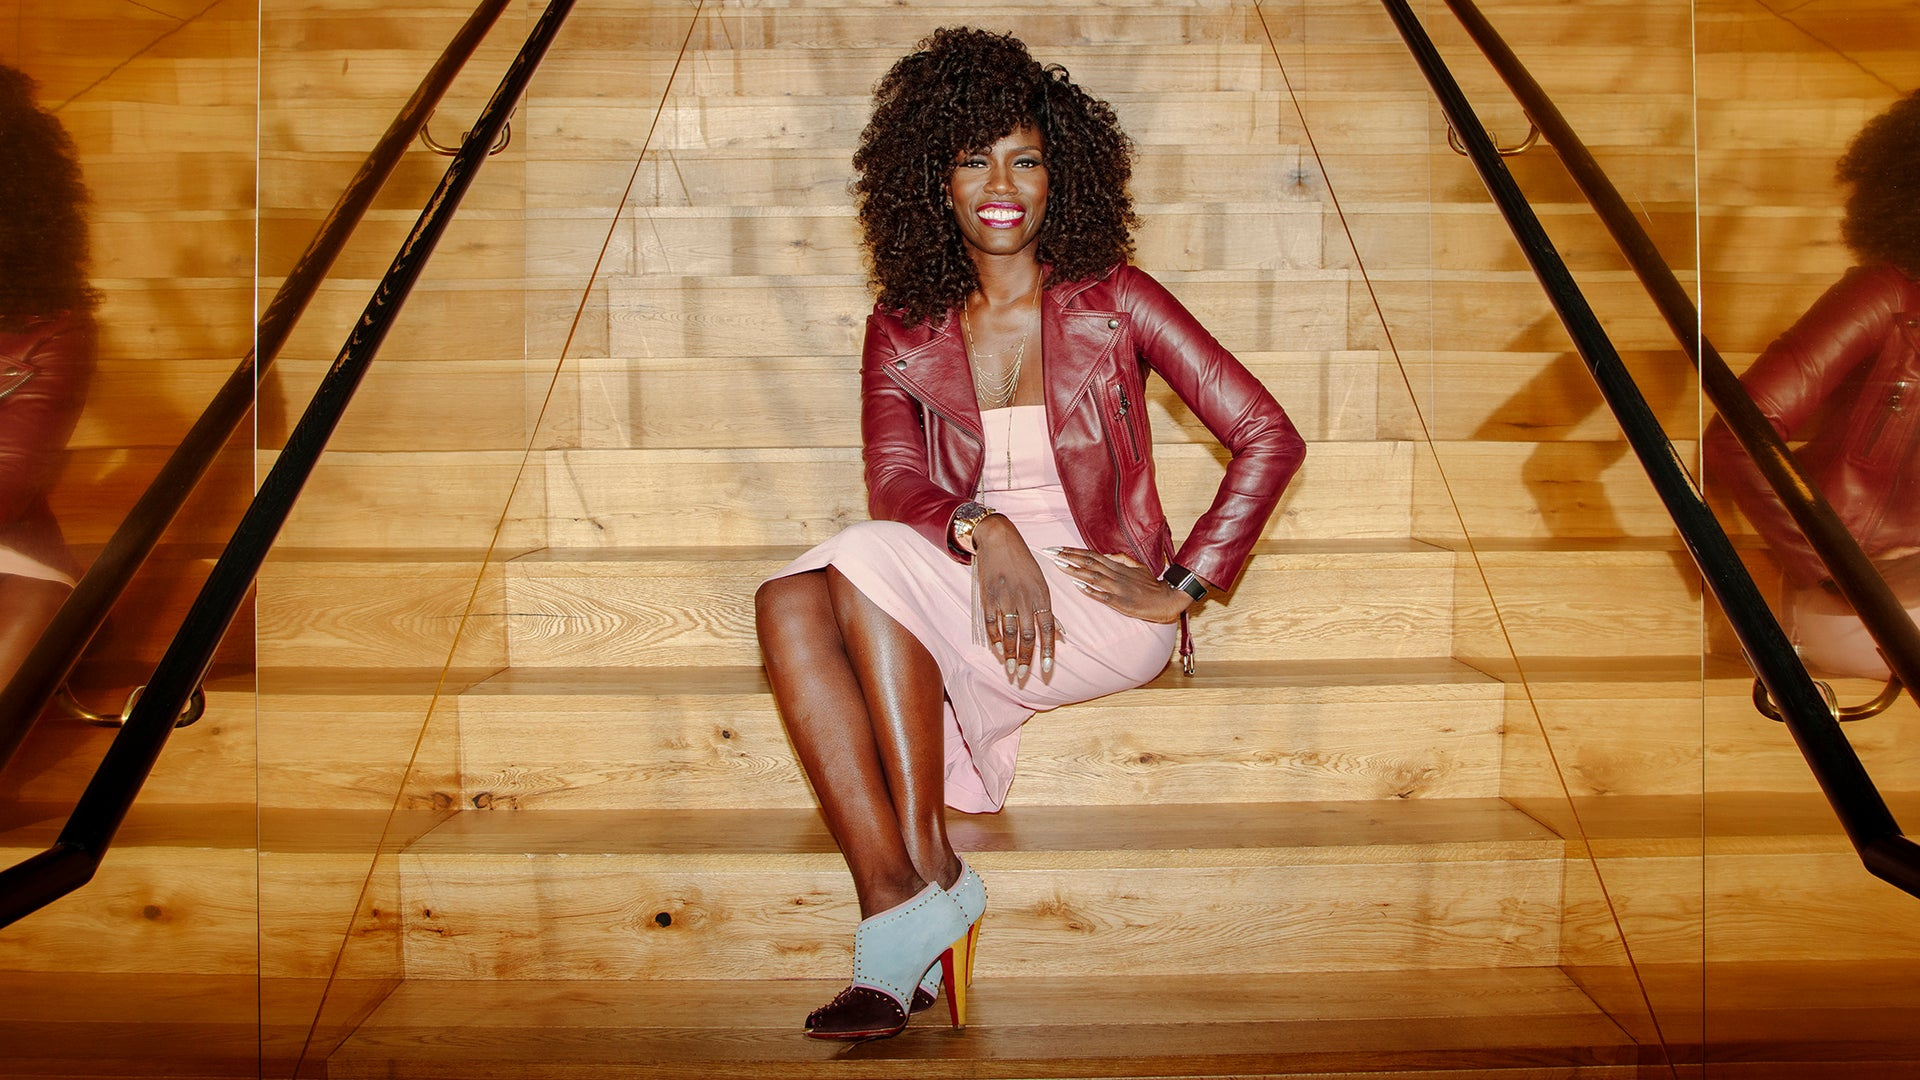 Bozoma Saint John On Her Social Media: 'You Can't Say [My] Life Has Been So Easy'